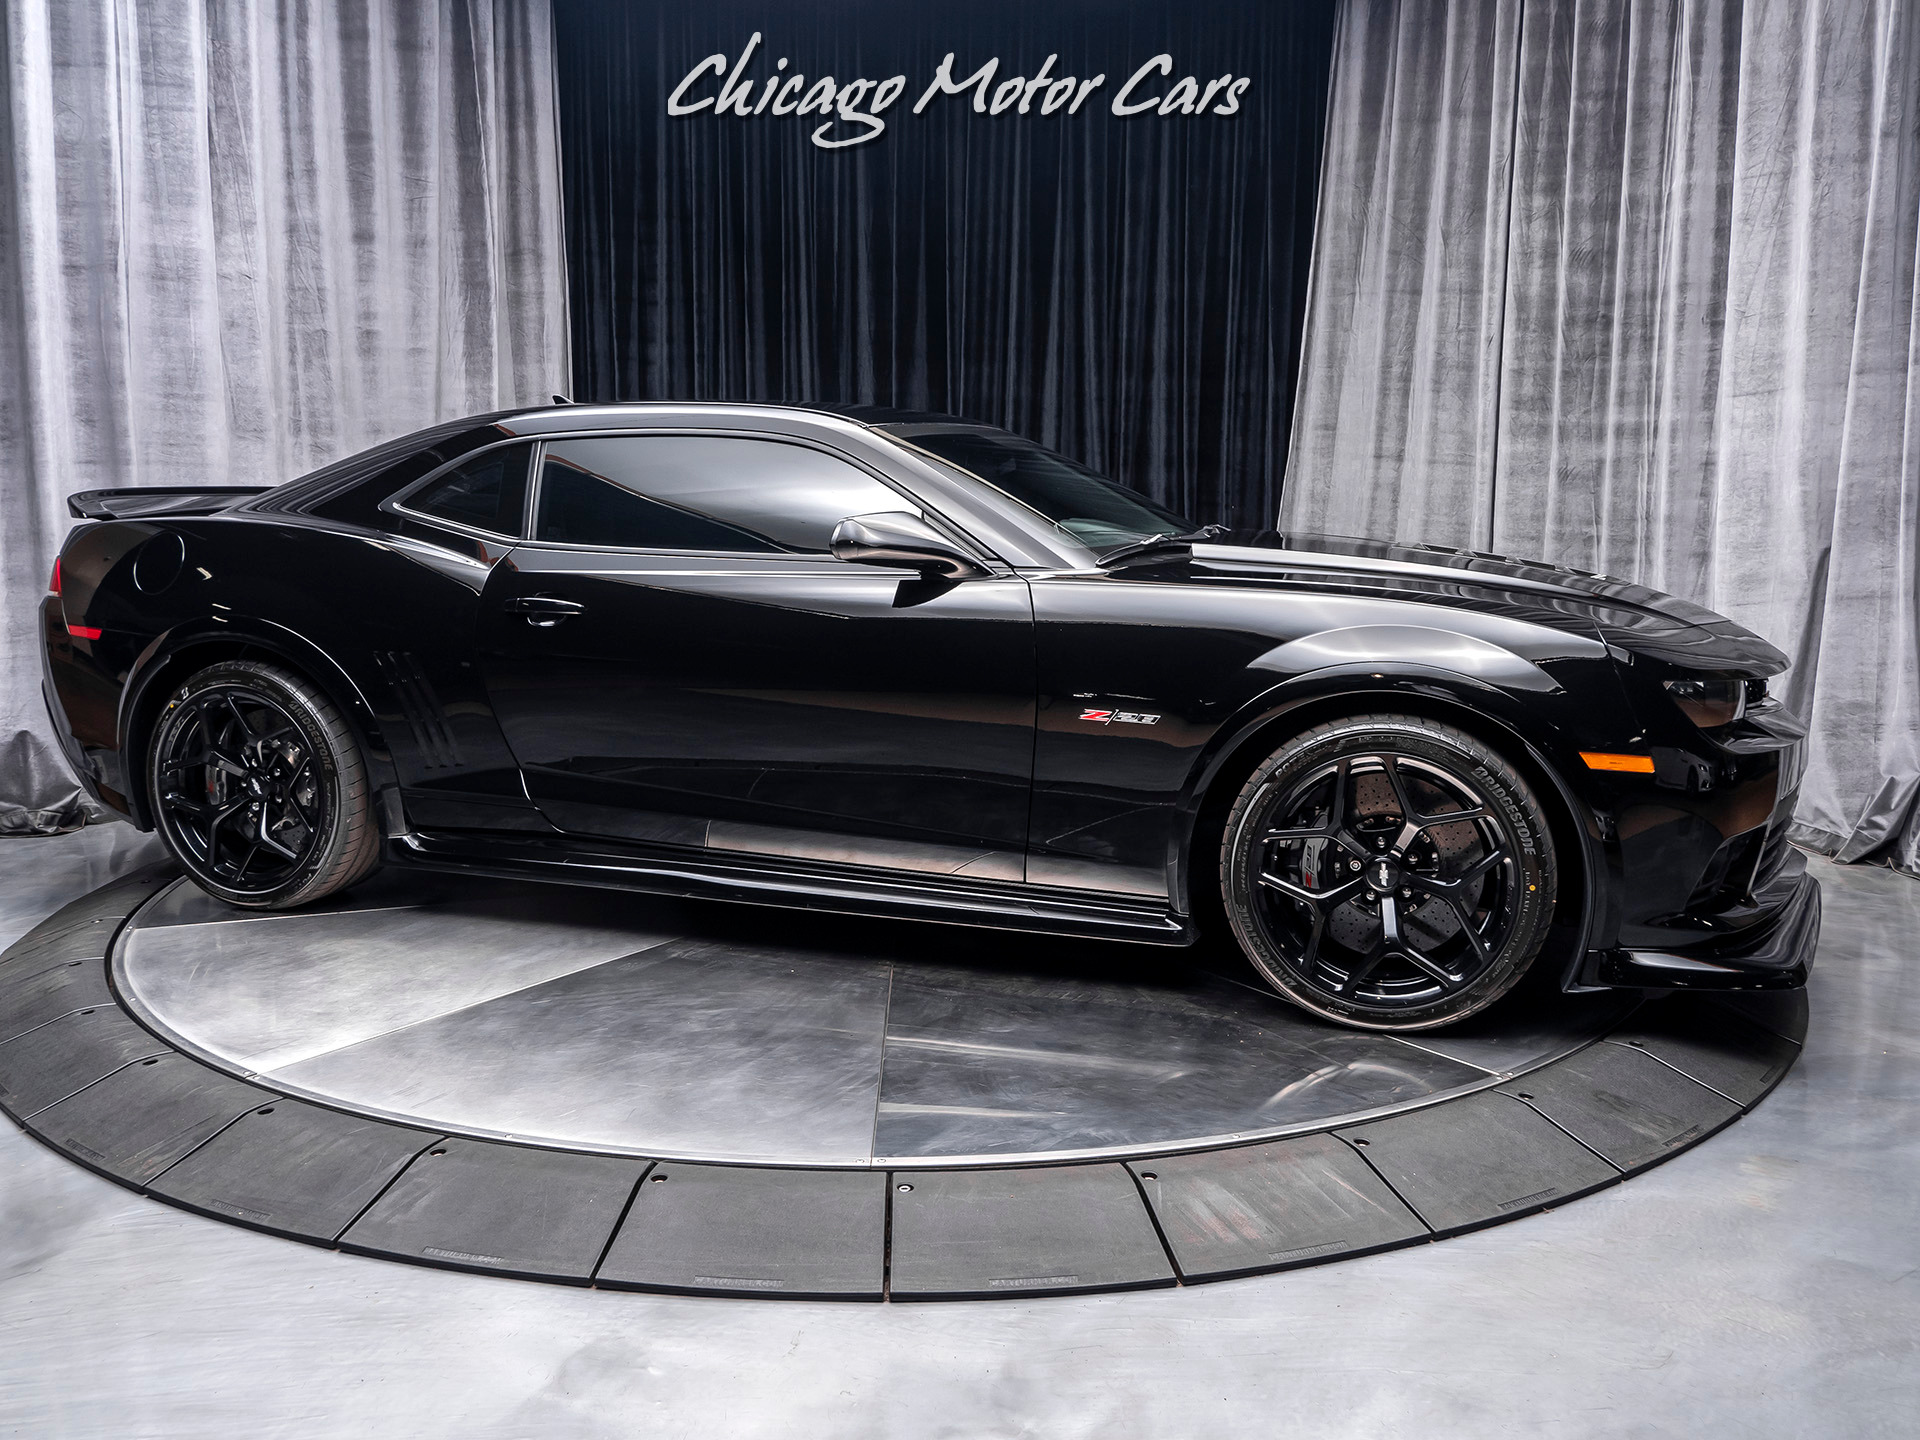 Used 2015 Chevrolet Camaro Z/28 Coupe AIR CONDITIONING